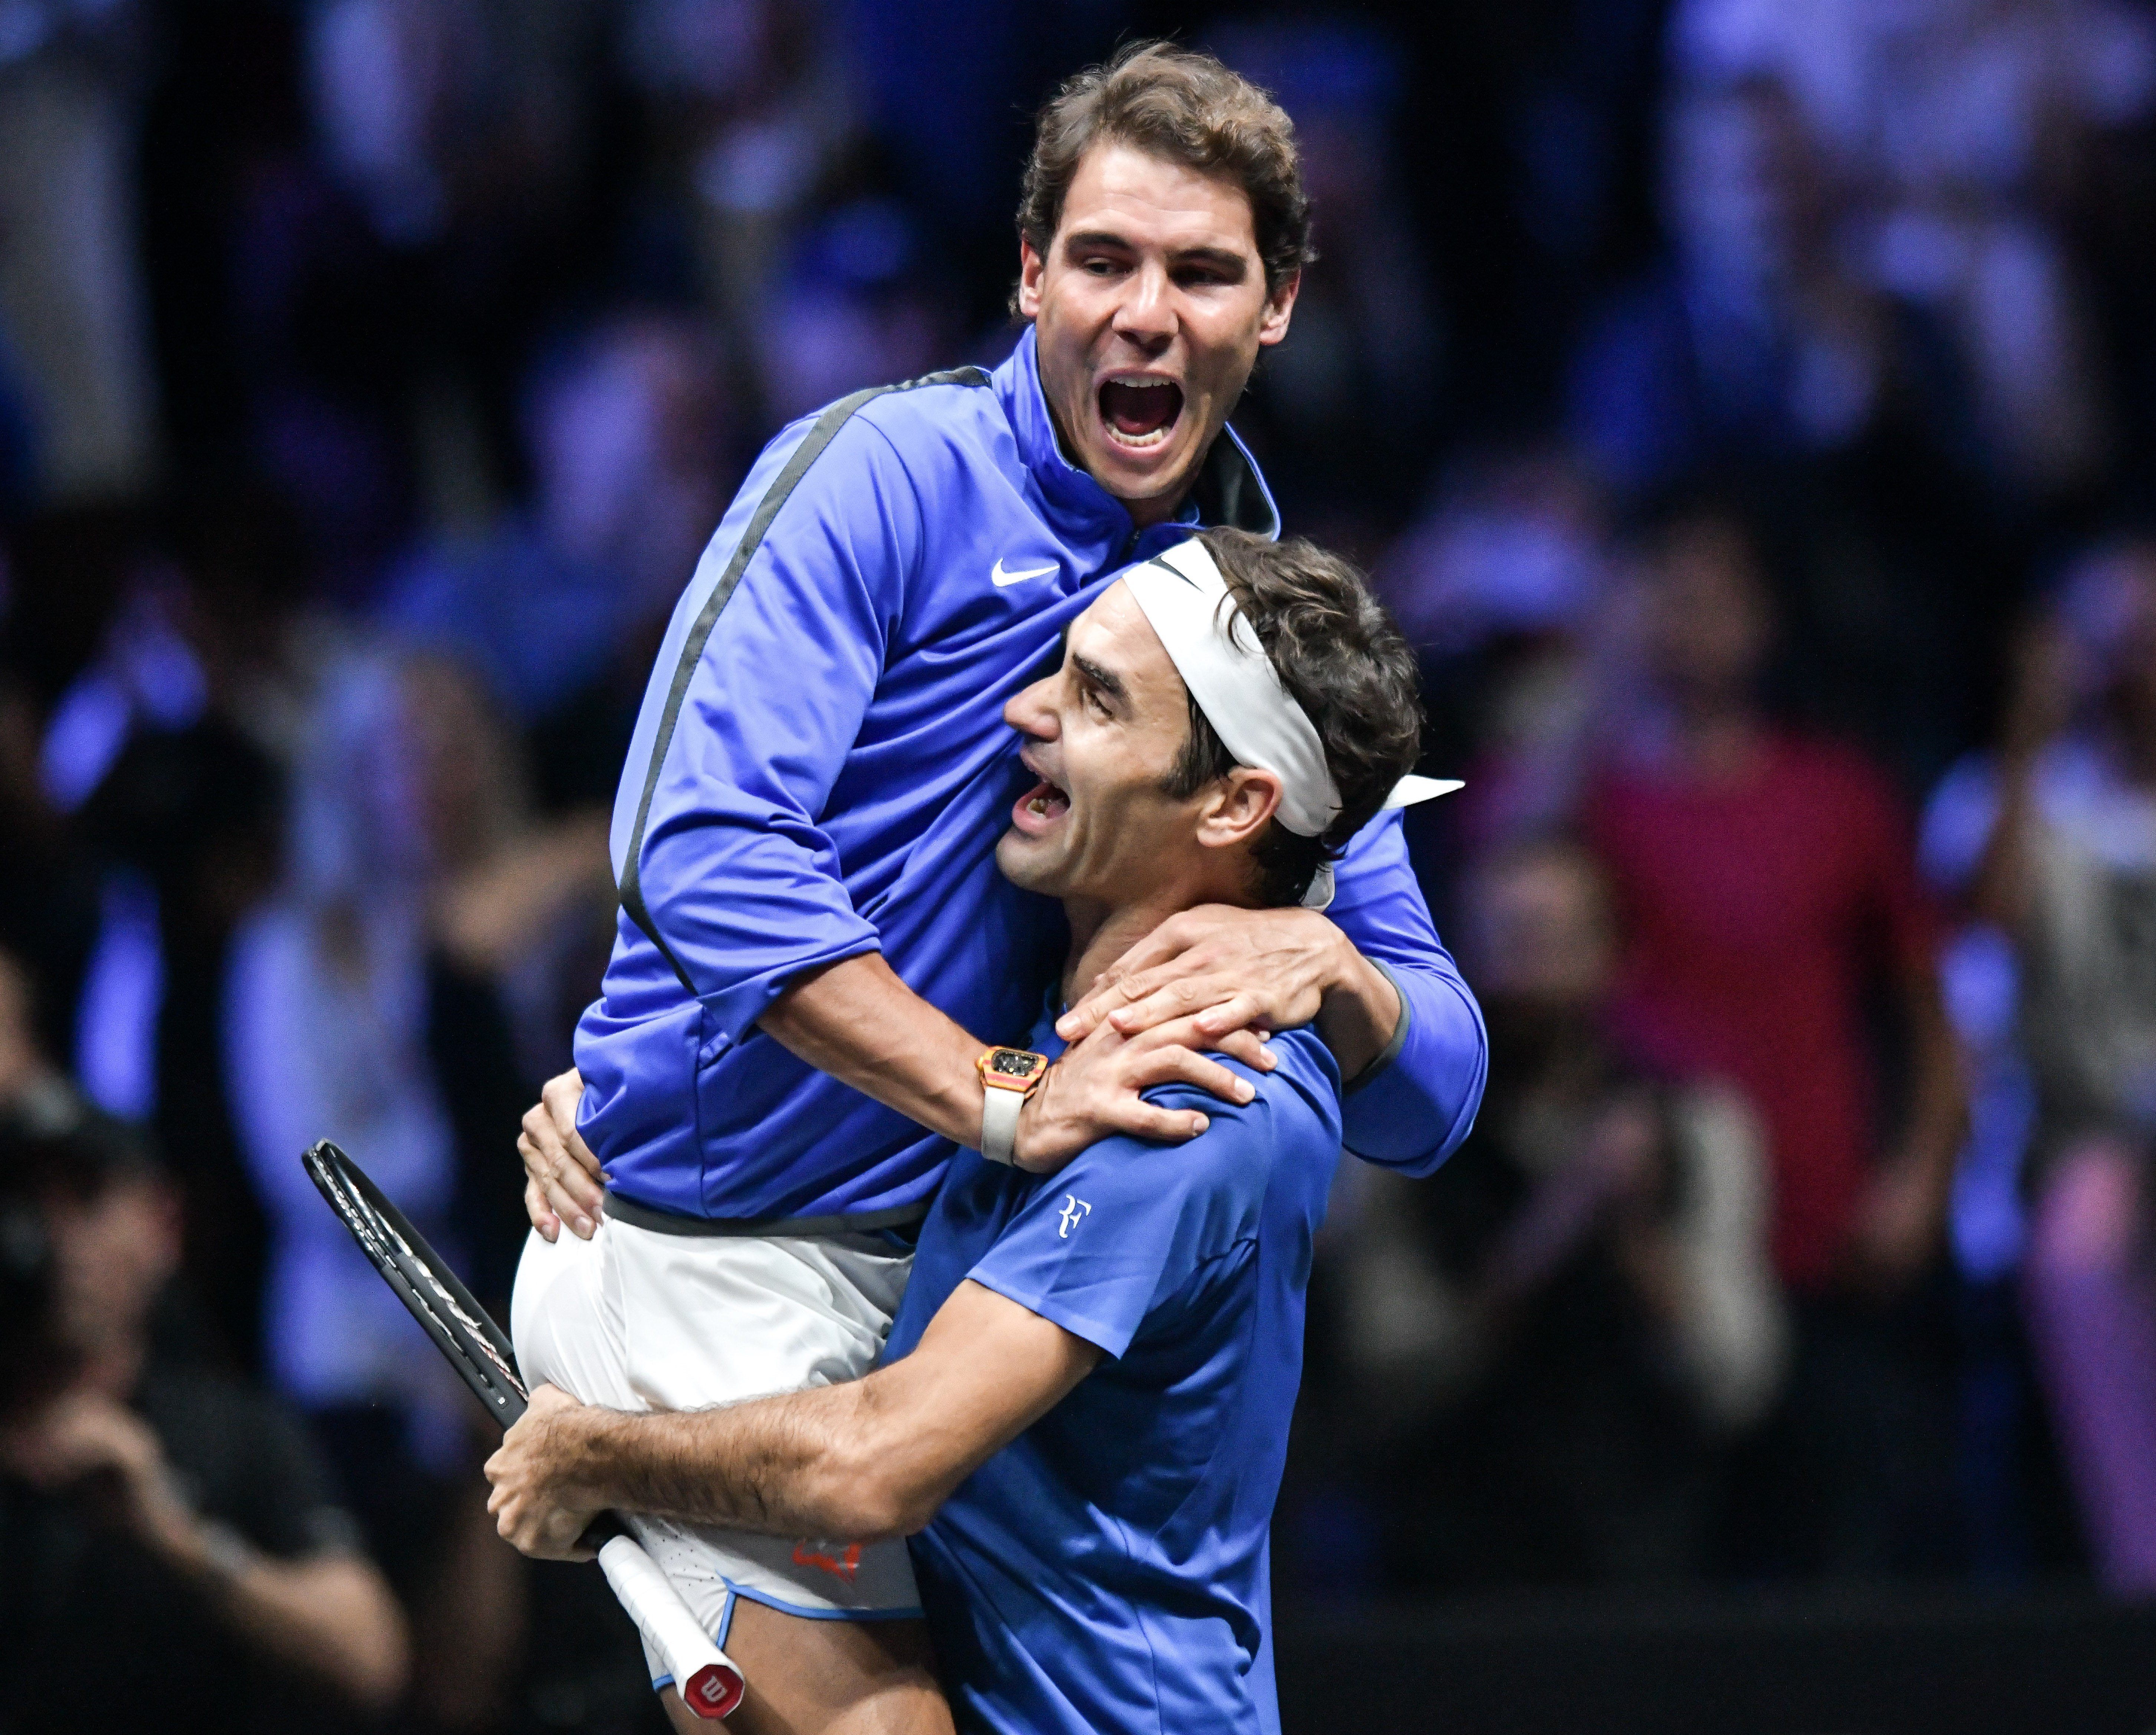 'Fedal' against the world